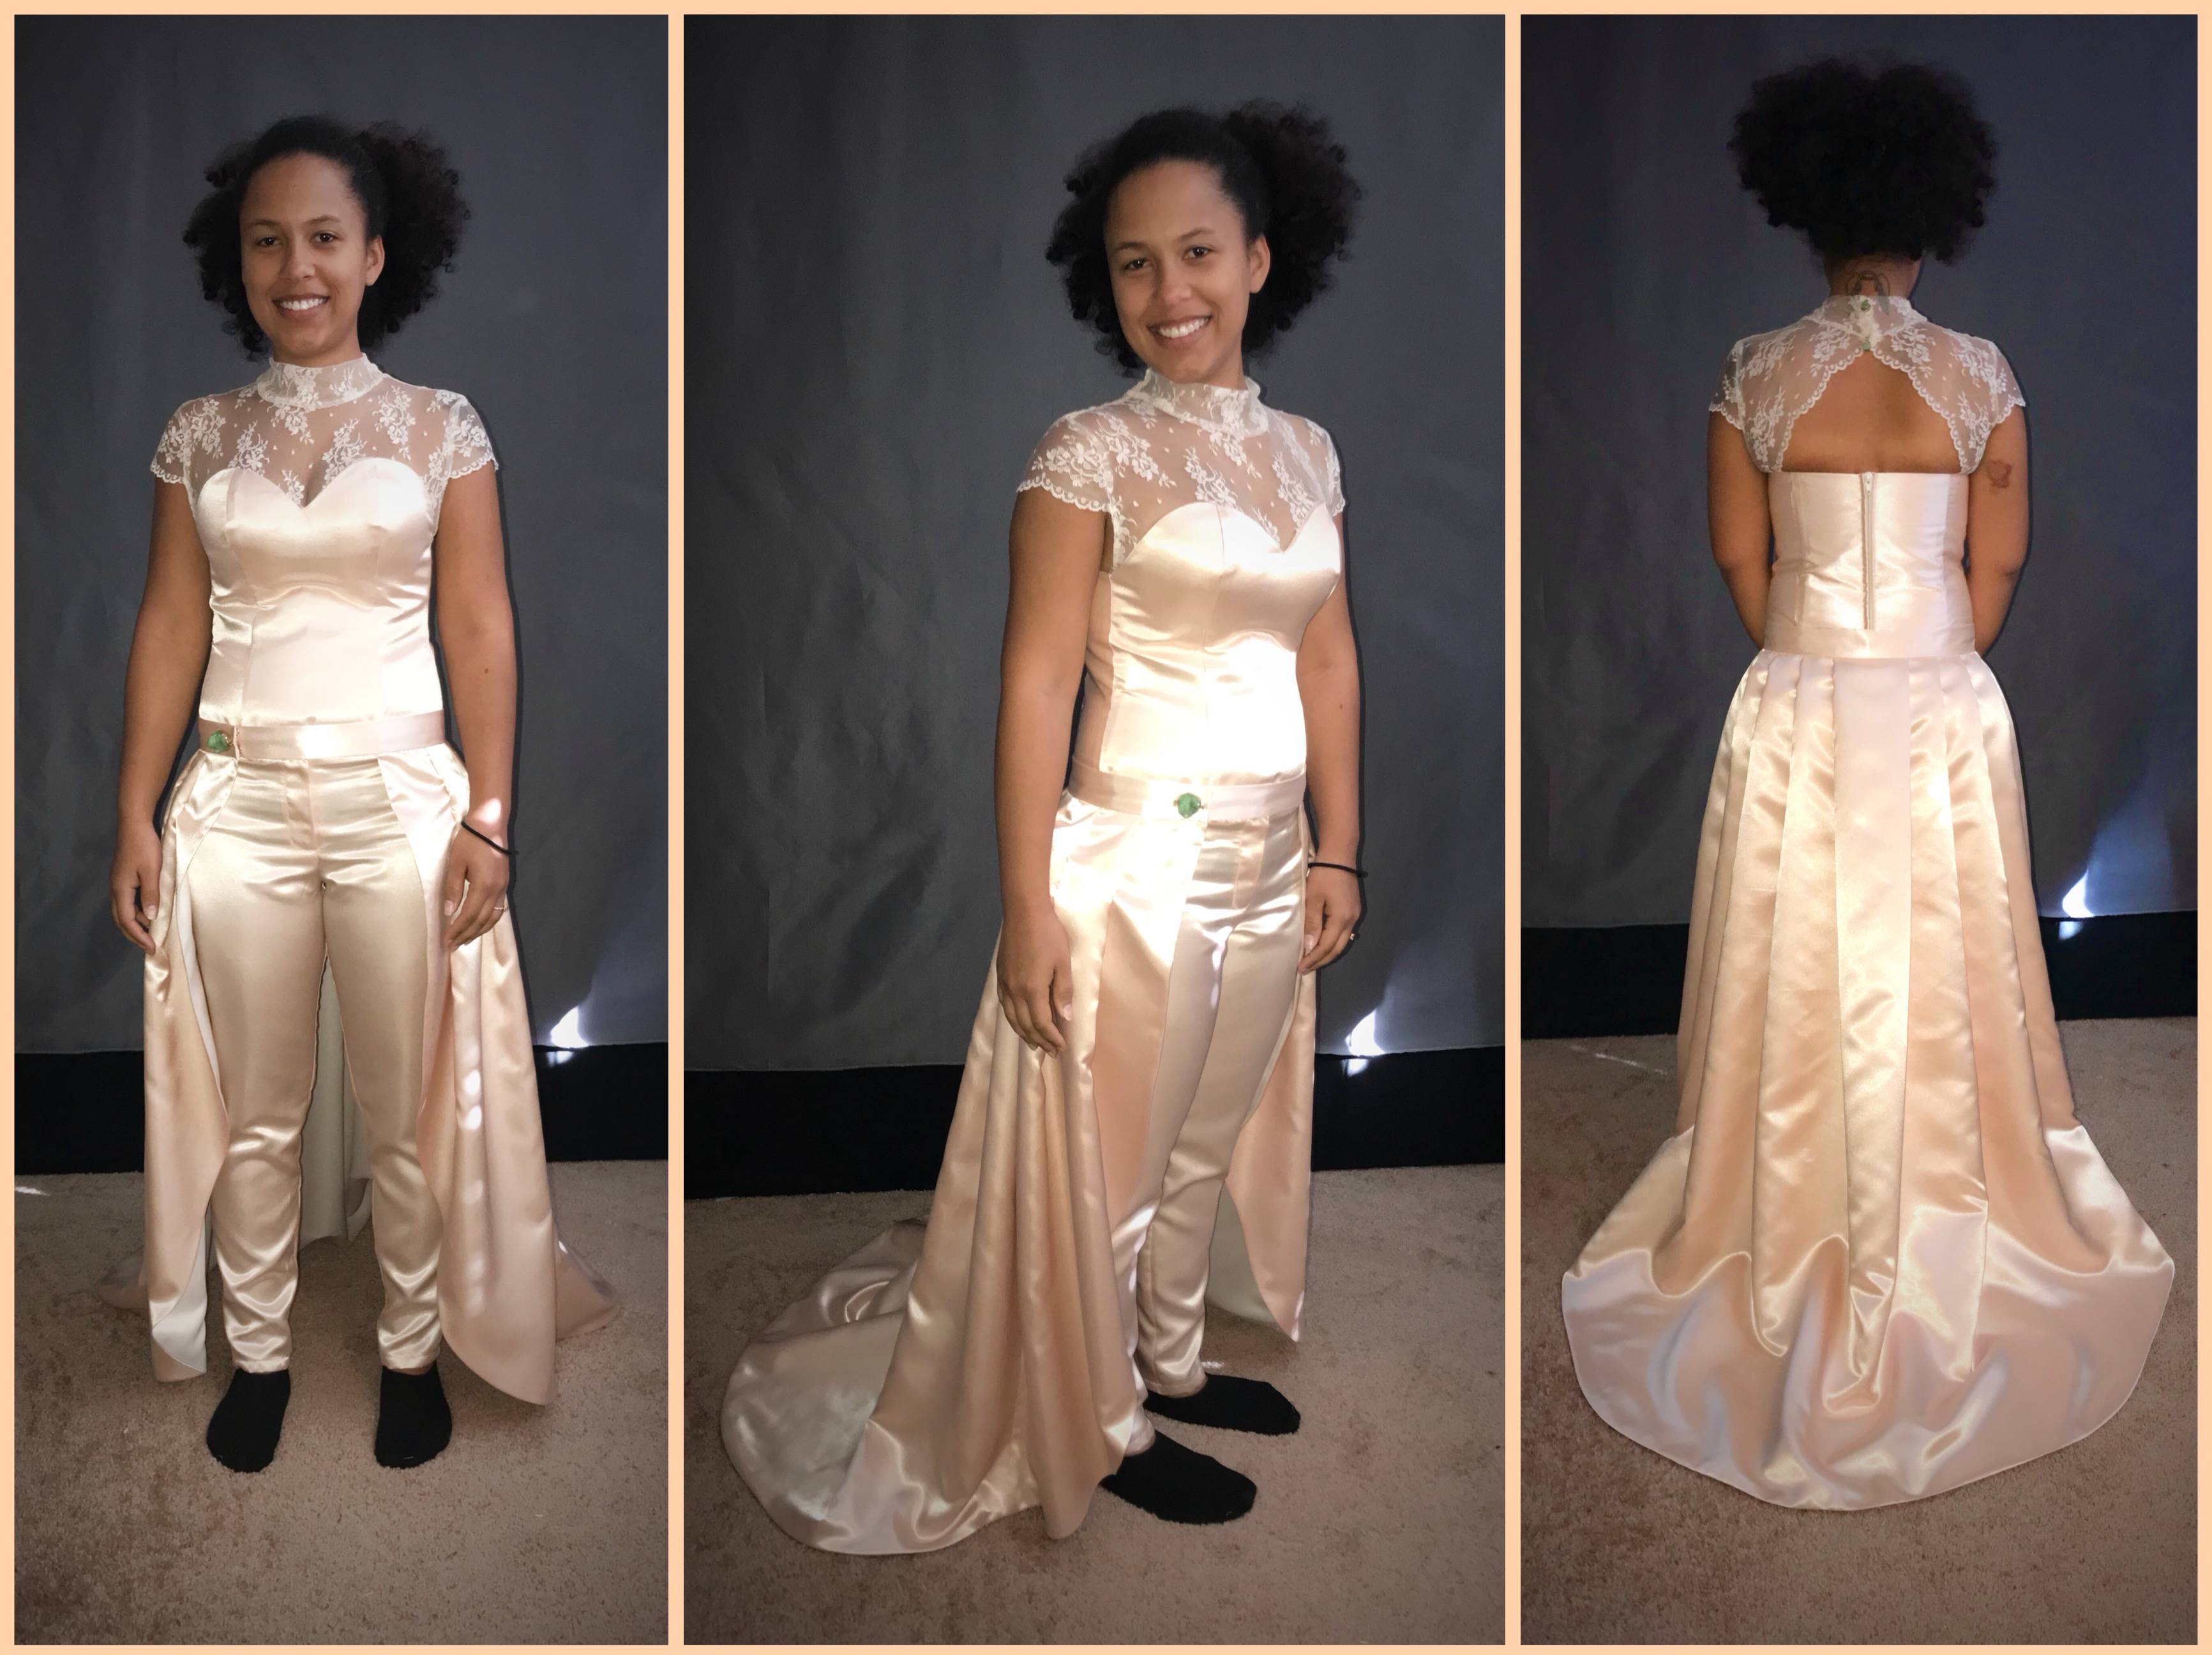 custom wedding outfit / seamstress